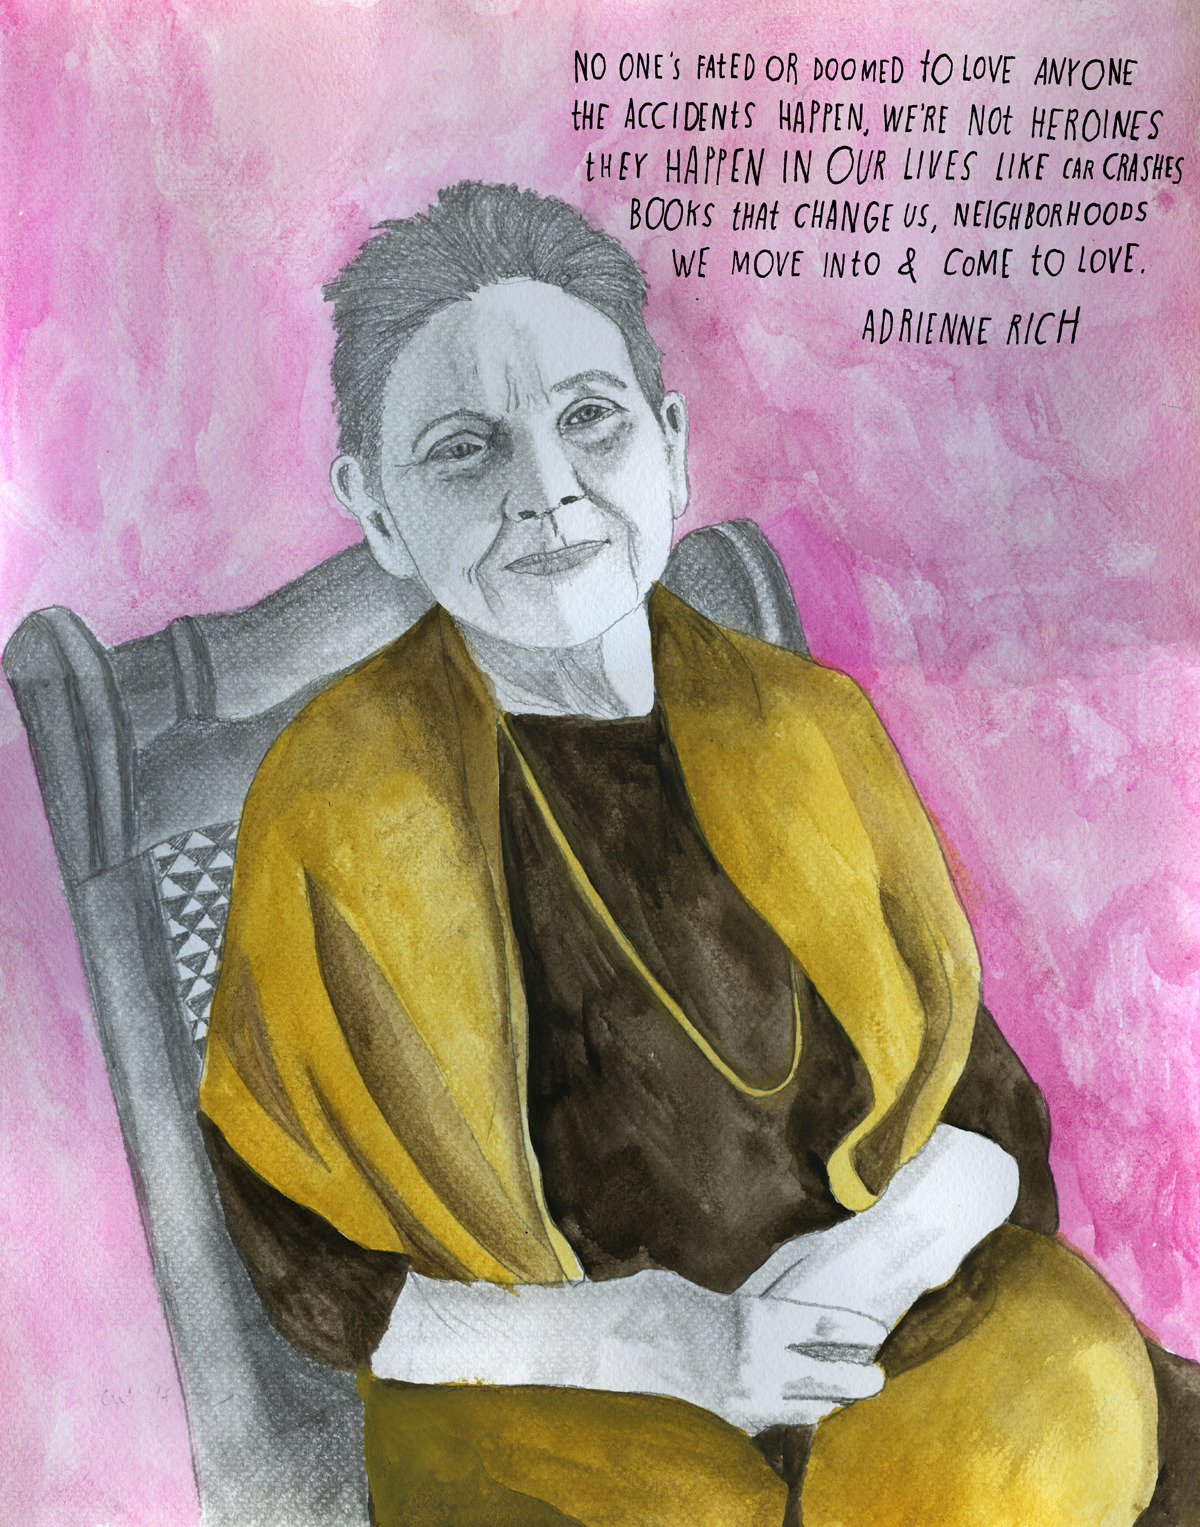 "For more than half a century, poet and essayist Adrienne Rich (May 16, 1929 — March 27, 2012) explored with equal parts courage and conviction such complex cultural phenomena as identity and ideology, gender and politics, oppression and freedom. The recipient of numerous honors, including the National Book Award for Poetry, two Guggenheim fellowships, and a MacArthur ""genius"" grant — Rich is celebrated as one of the most influential poets of the twentieth century. For Rich, art was as much a tool of creative expression as it was a vehicle for empathy, for expanding one's understanding of the world beyond the limits of the individual. In a 2005 conversation at the Kelly Writers House, she articulates her ethos with a beautiful definition of art: One of the great functions of art is to help us imagine what it is like to be not ourselves, what it is like to be someone or something else, what it is like to live in another skin, what it is like to live in another body, and in that sense to surpass ourselves, to go out beyond ourselves. Rich's own life was anything but ordinary. In 1953, she married Harvard professor Alfred Haskell Conrad, who fathered her three children. Over the decade that followed, her career exploded, in the process catapulting her into a spurt of personal growth, self-discovery, and political awakening. In 1970, stifled by the institution of marriage, Rich divorced Conrad. In 1976, she met and fell in love with Jamaican-born novelist and editor Michelle Cliff, who became her lifelong partner and inspired Rich's Twenty-One Love Poems (1977), her first literary exploration of lesbian desire and sexuality, later included in one of her most celebrated works, The Dream of a Common Language (1978). The two remained together for thirty-six years, until Rich's death in 2012. In a lamentable manifestation of the current failings of marriage equality, as of this writing, her Wikipedia entry still lists Conrad as her only spouse. In 1997, in protest against the growing monopoly of power and the government's proposed plan to end funding for the National Endowment for the Arts, Rich famously became the first and only person to date to decline the prestigious National Medal of Arts, the highest honor bestowed upon an individual artist on behalf of the people of the United States, previously awarded to such luminaries as Ralph Ellison, Georgia O'Keeffe, John Updike, Aretha Franklin, Bob Dylan, and fellow reconstructionist Maya Angelou. But despite the strong undercurrents of political and sociocultural commentary, Rich's work was driven first and foremost by the irrepressible stirrings of her inner life. She reflected in an interview: A poem can come out of something seen, something overheard, listening to music, an article in a newspaper, a book, a combination of all these… There's a kind of emotional release that I then find in the act of writing the poem. It's not, 'I'm now going to sit down and write a poem about this.' Learn more: Brain Pickings 